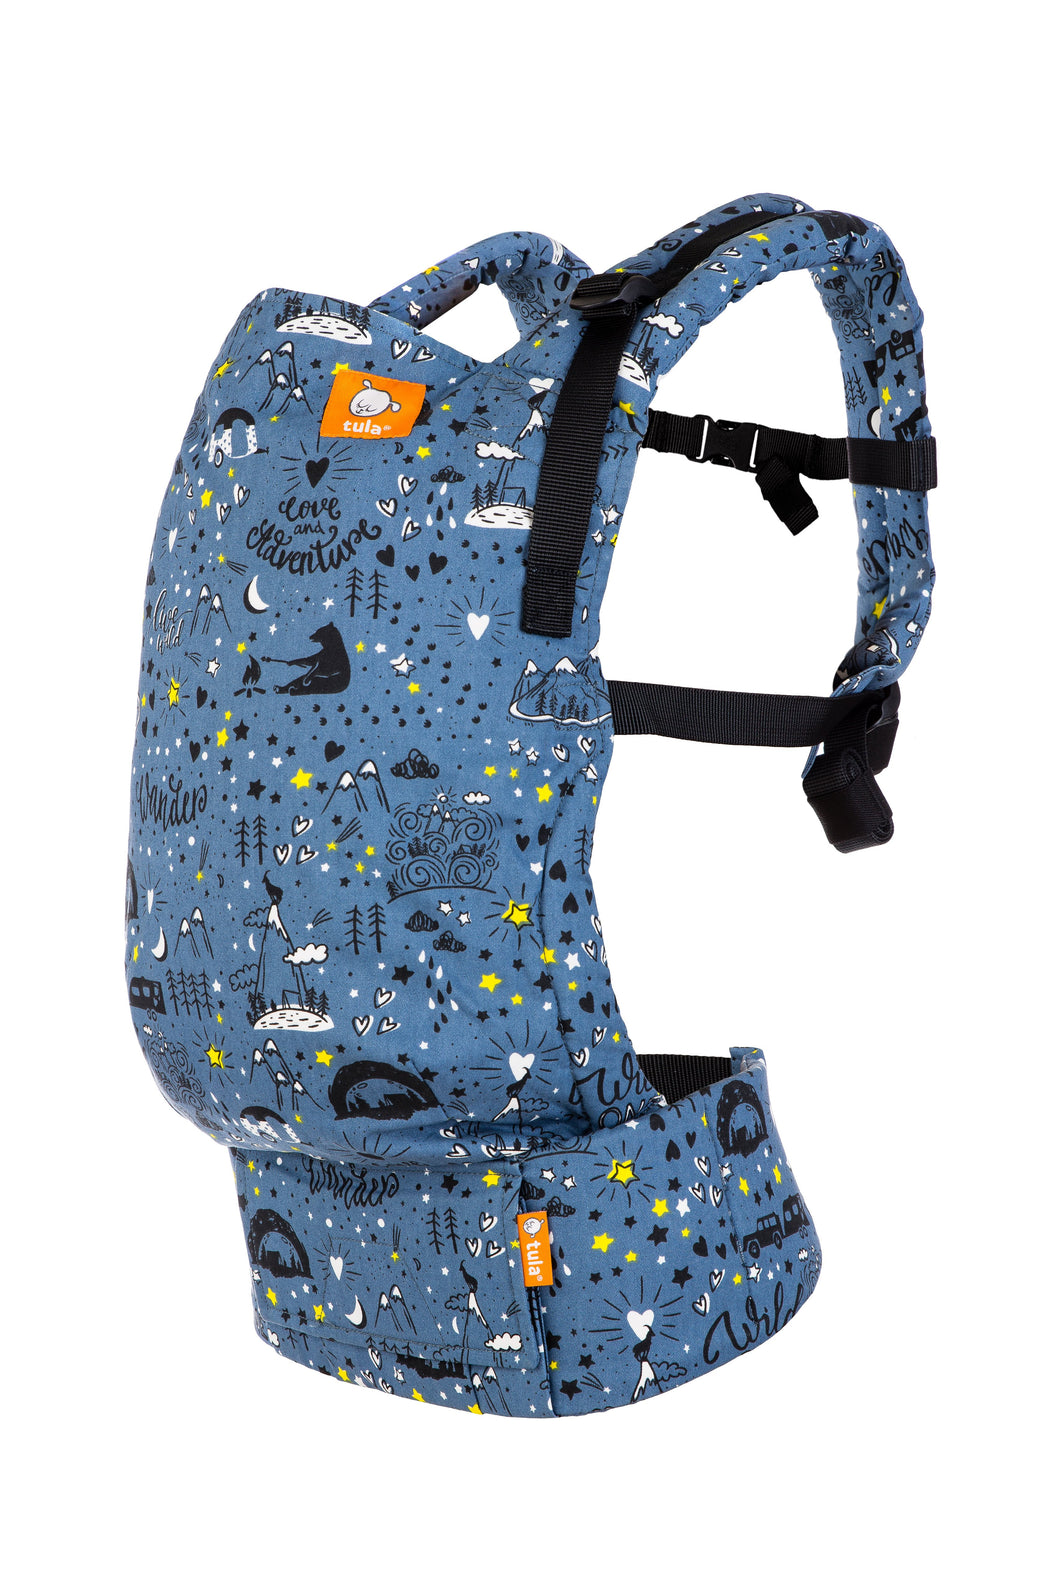 Wander - Tula Free-to-Grow Baby Carrier